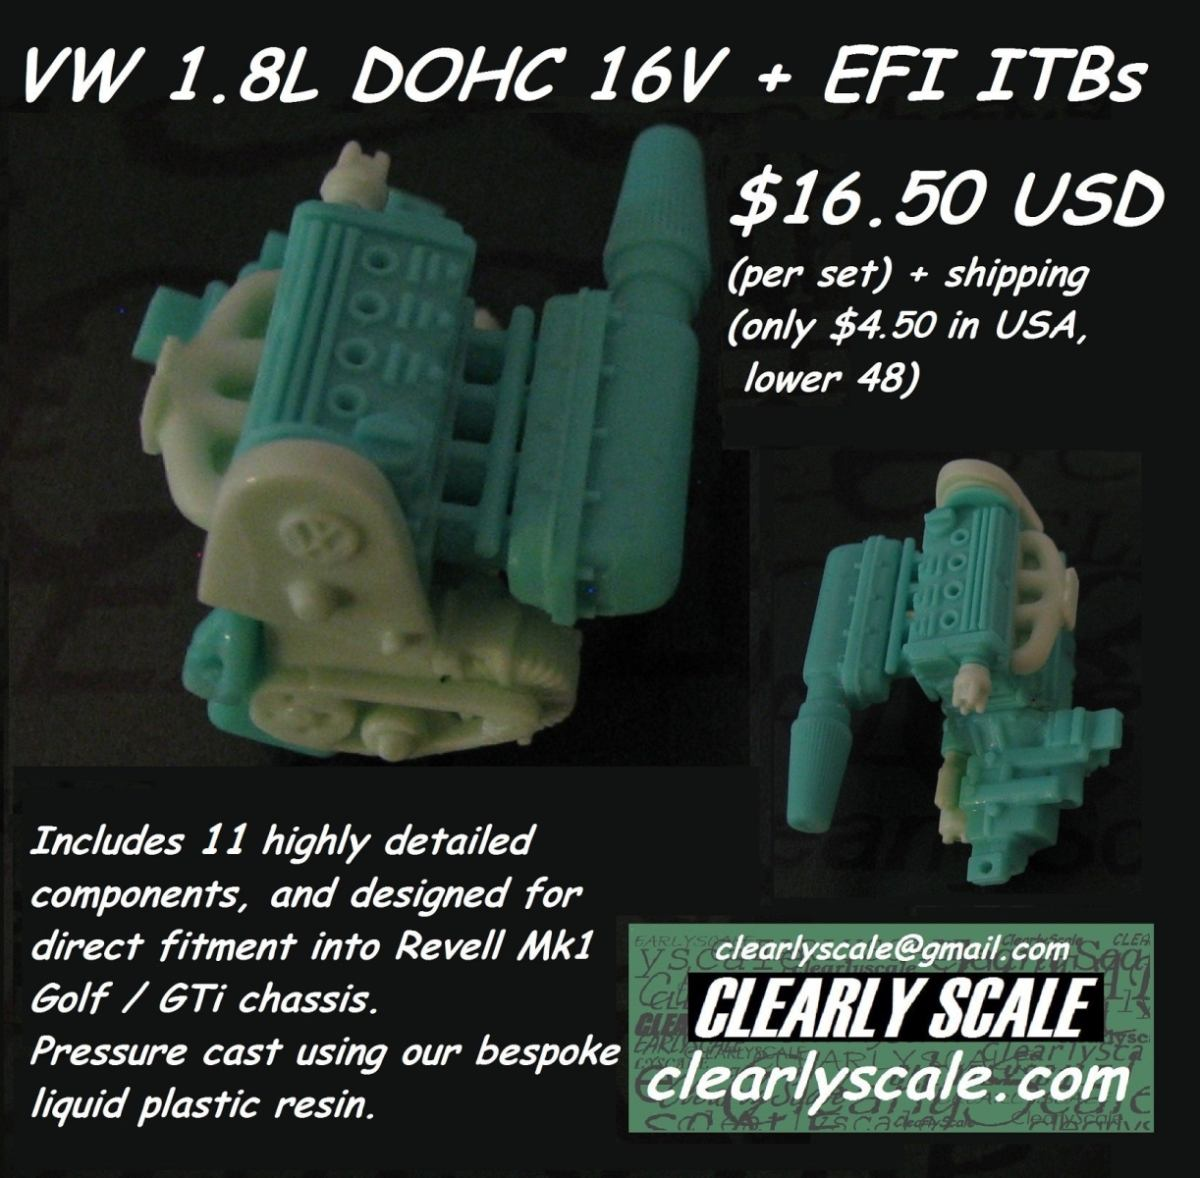 small resolution of vw dohc 16v with efi itb engine set clearly scale custom clearly scale